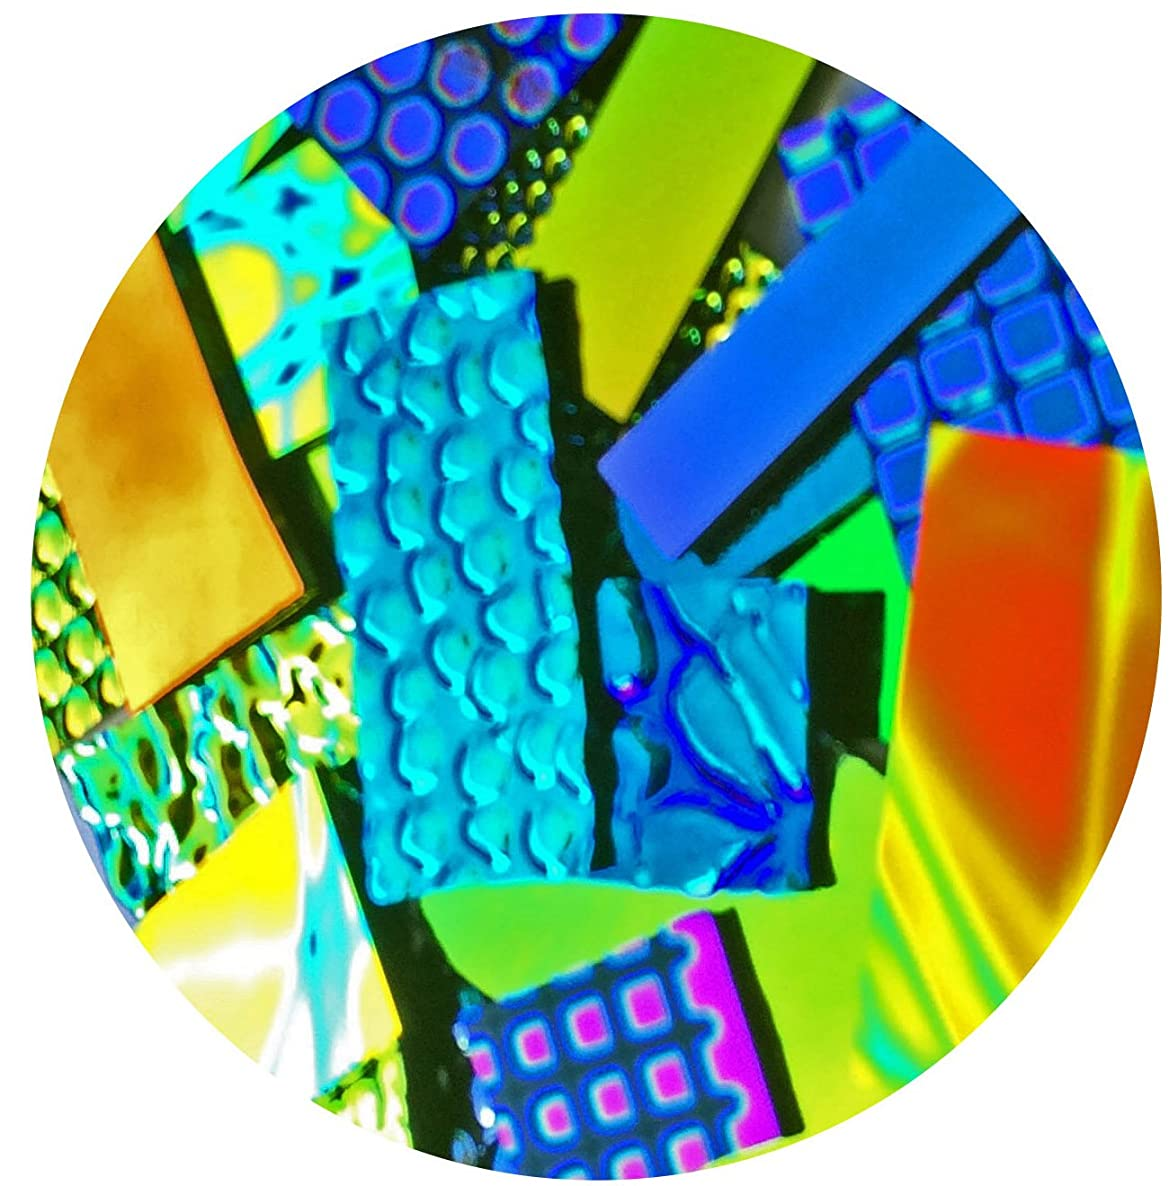 Assorted Dichroic on Clear Glass Pieces - 4 oz, 96 COE